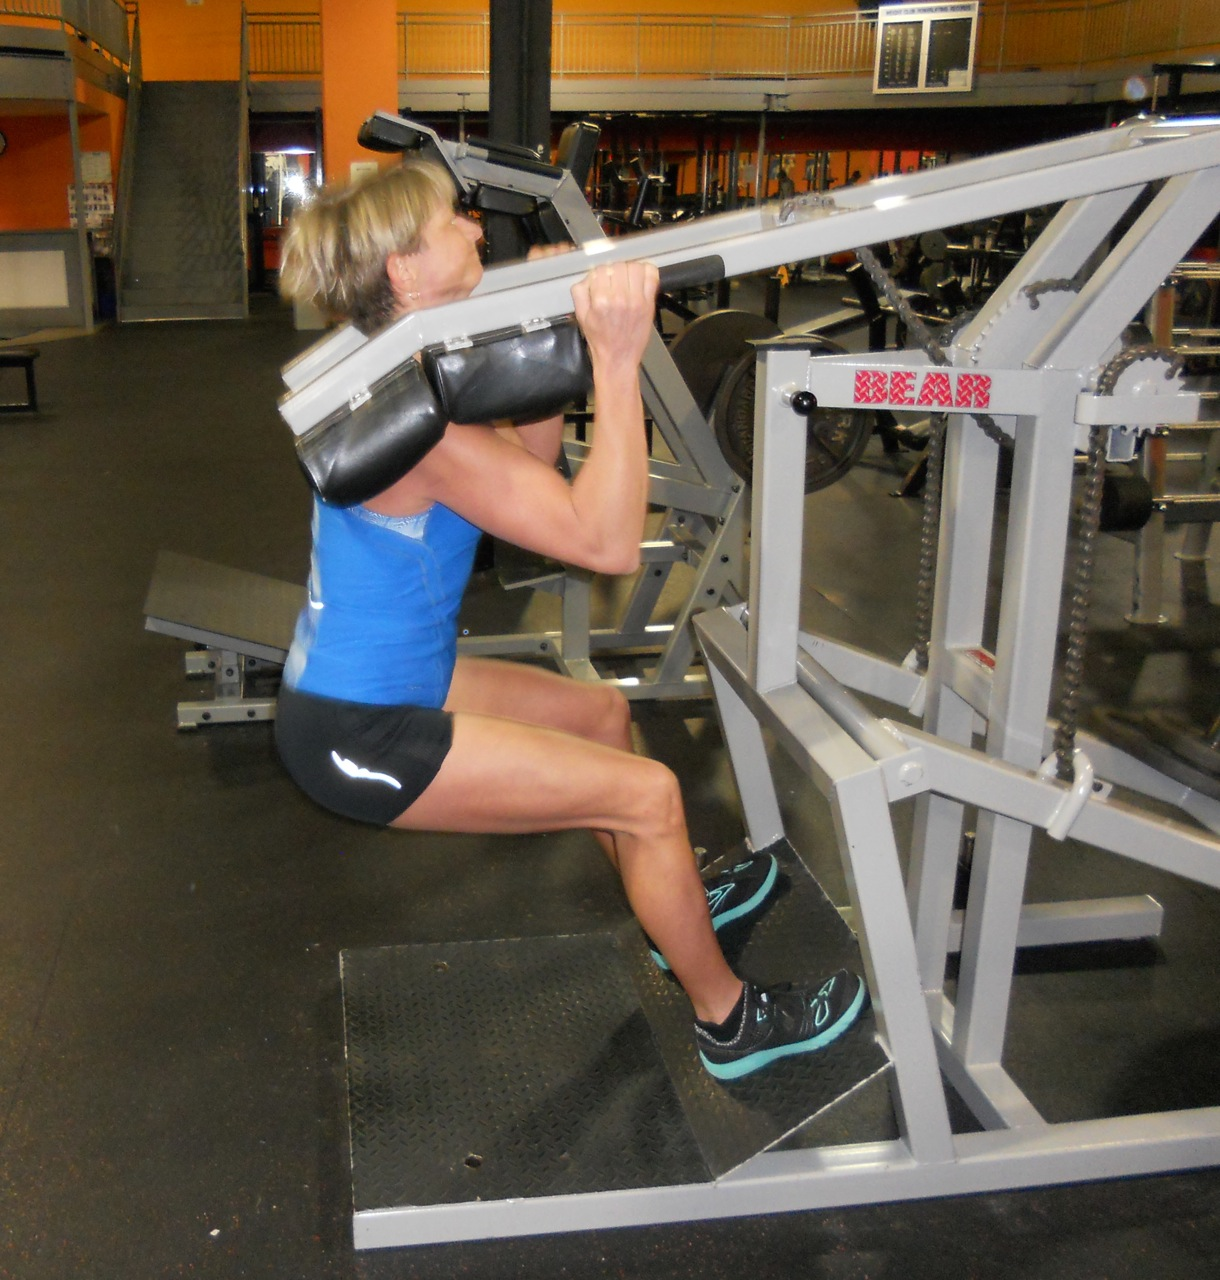 Endurance Training: Cort The Sport: Speed And Endurance Focused Lower Body